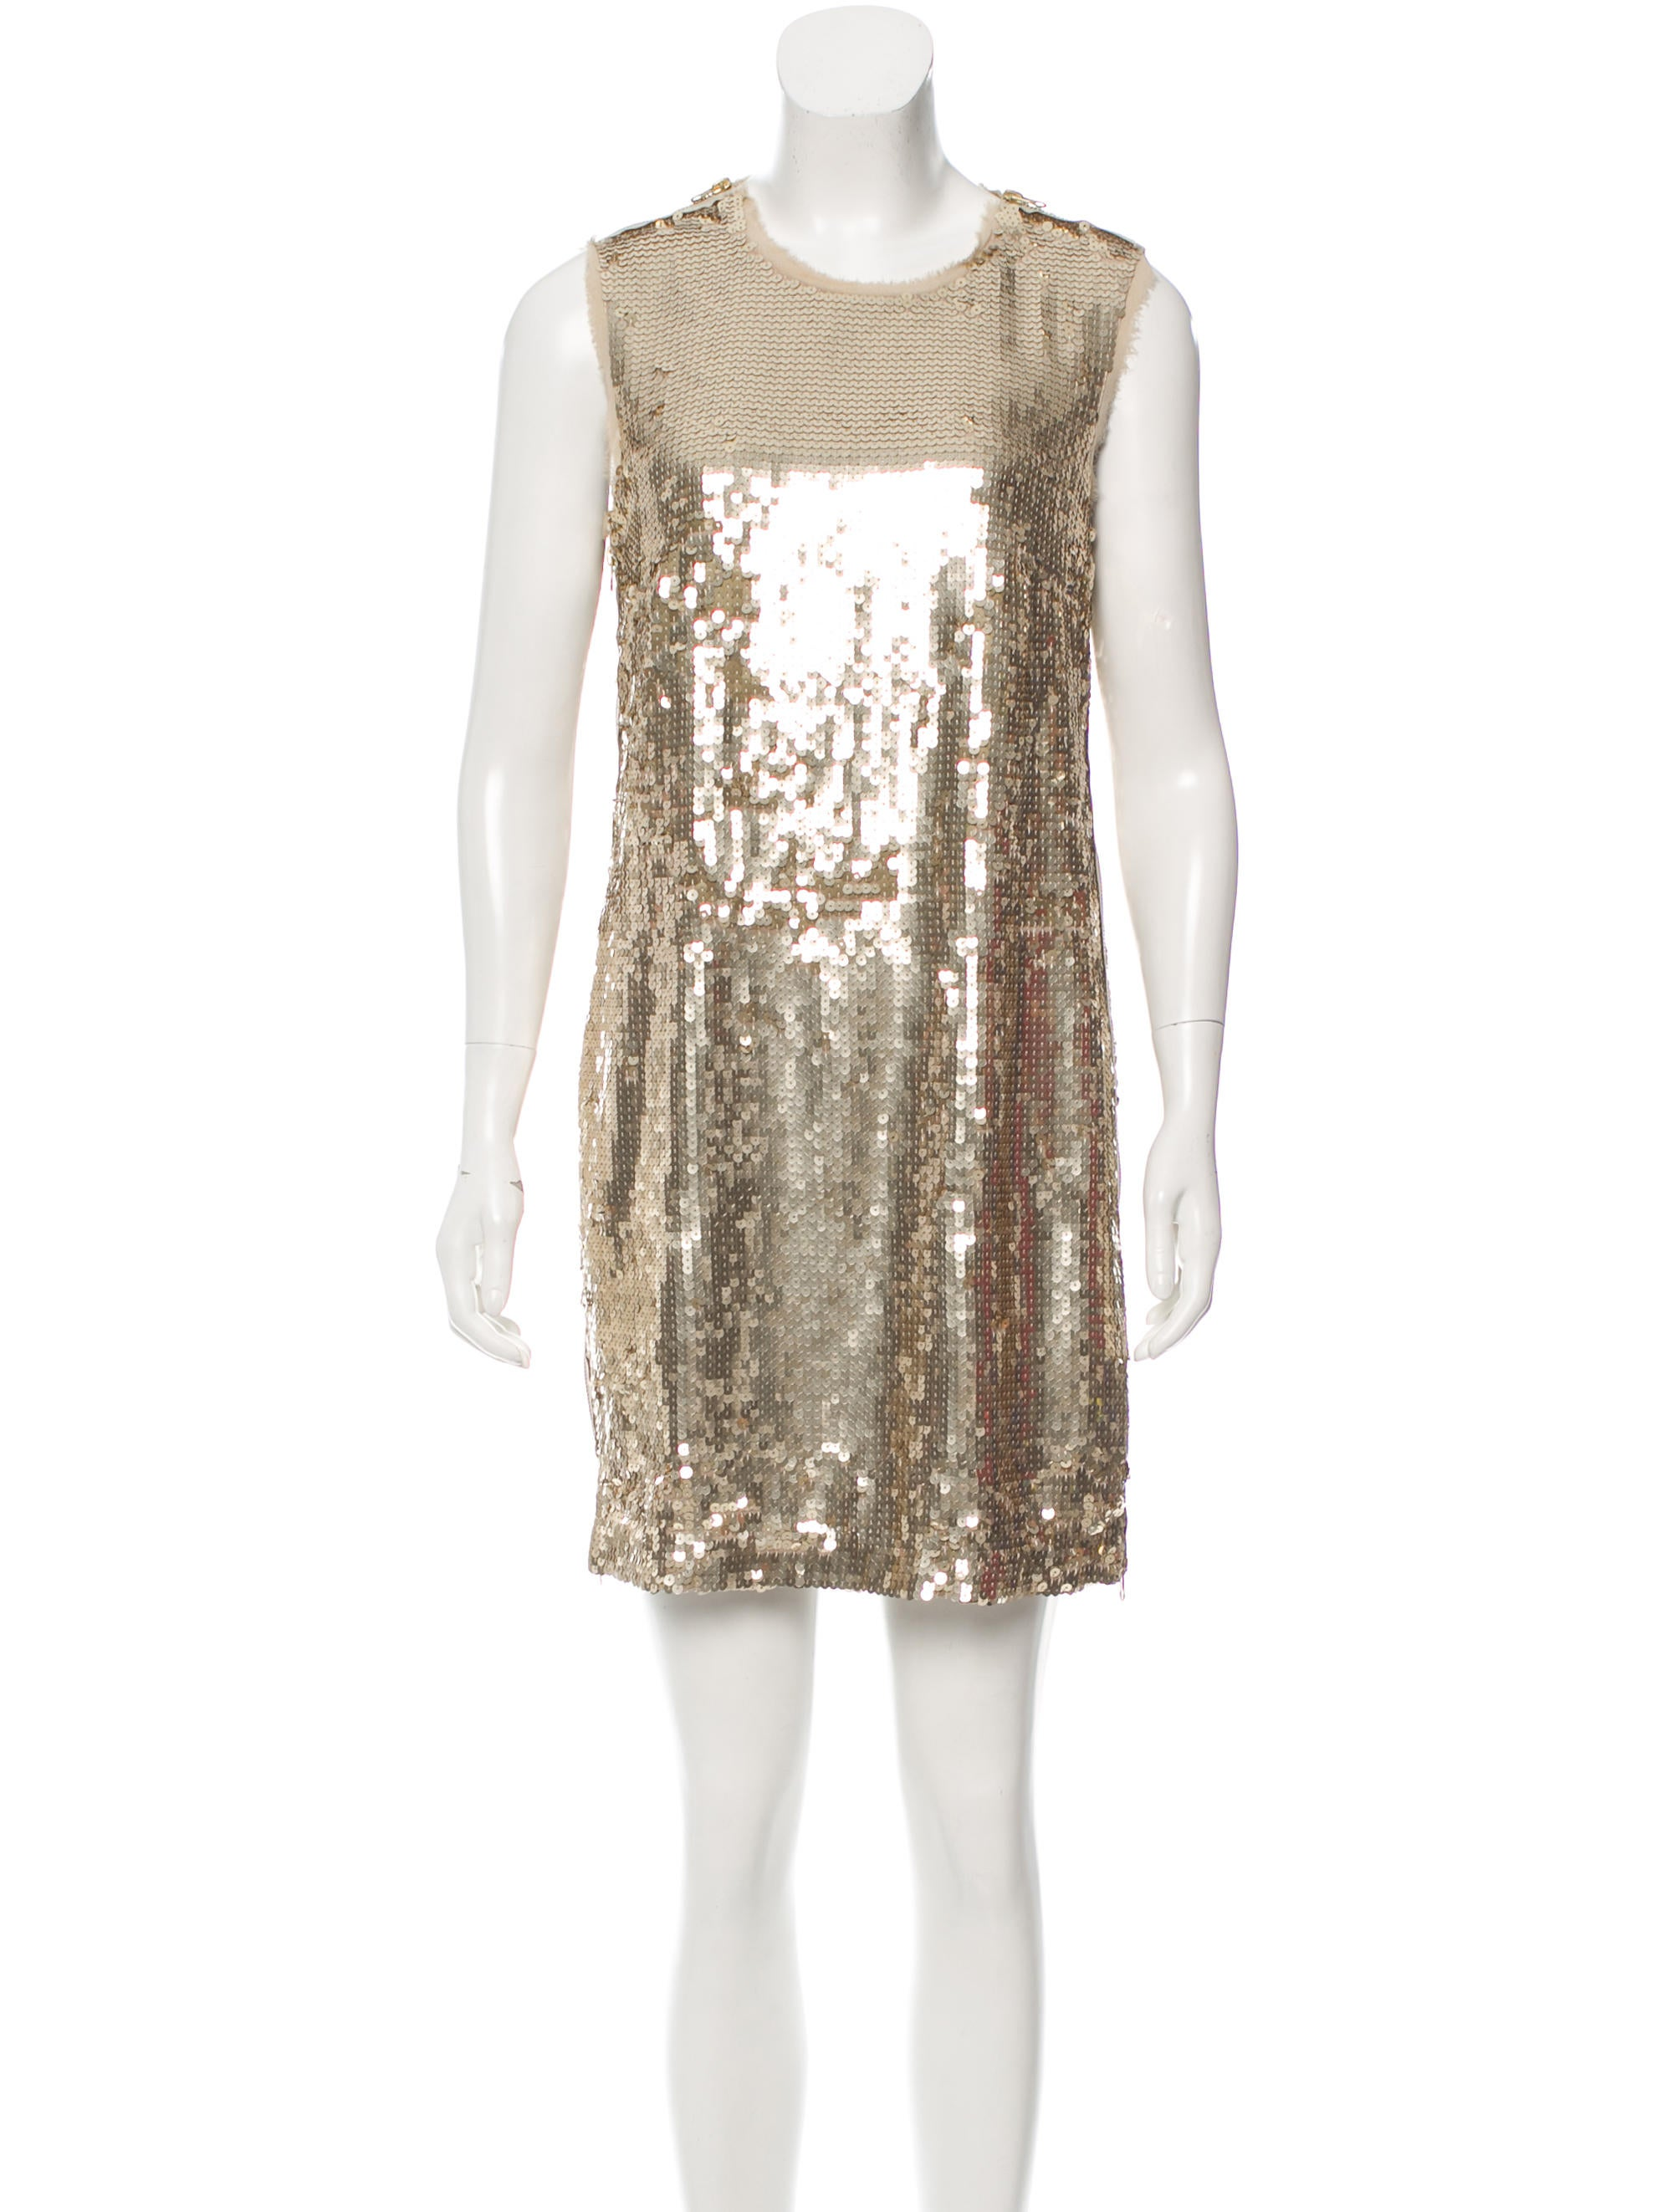 Robert Rodriguez Sleeveless Sequined Dress Clothing Wrr28486 The Realreal